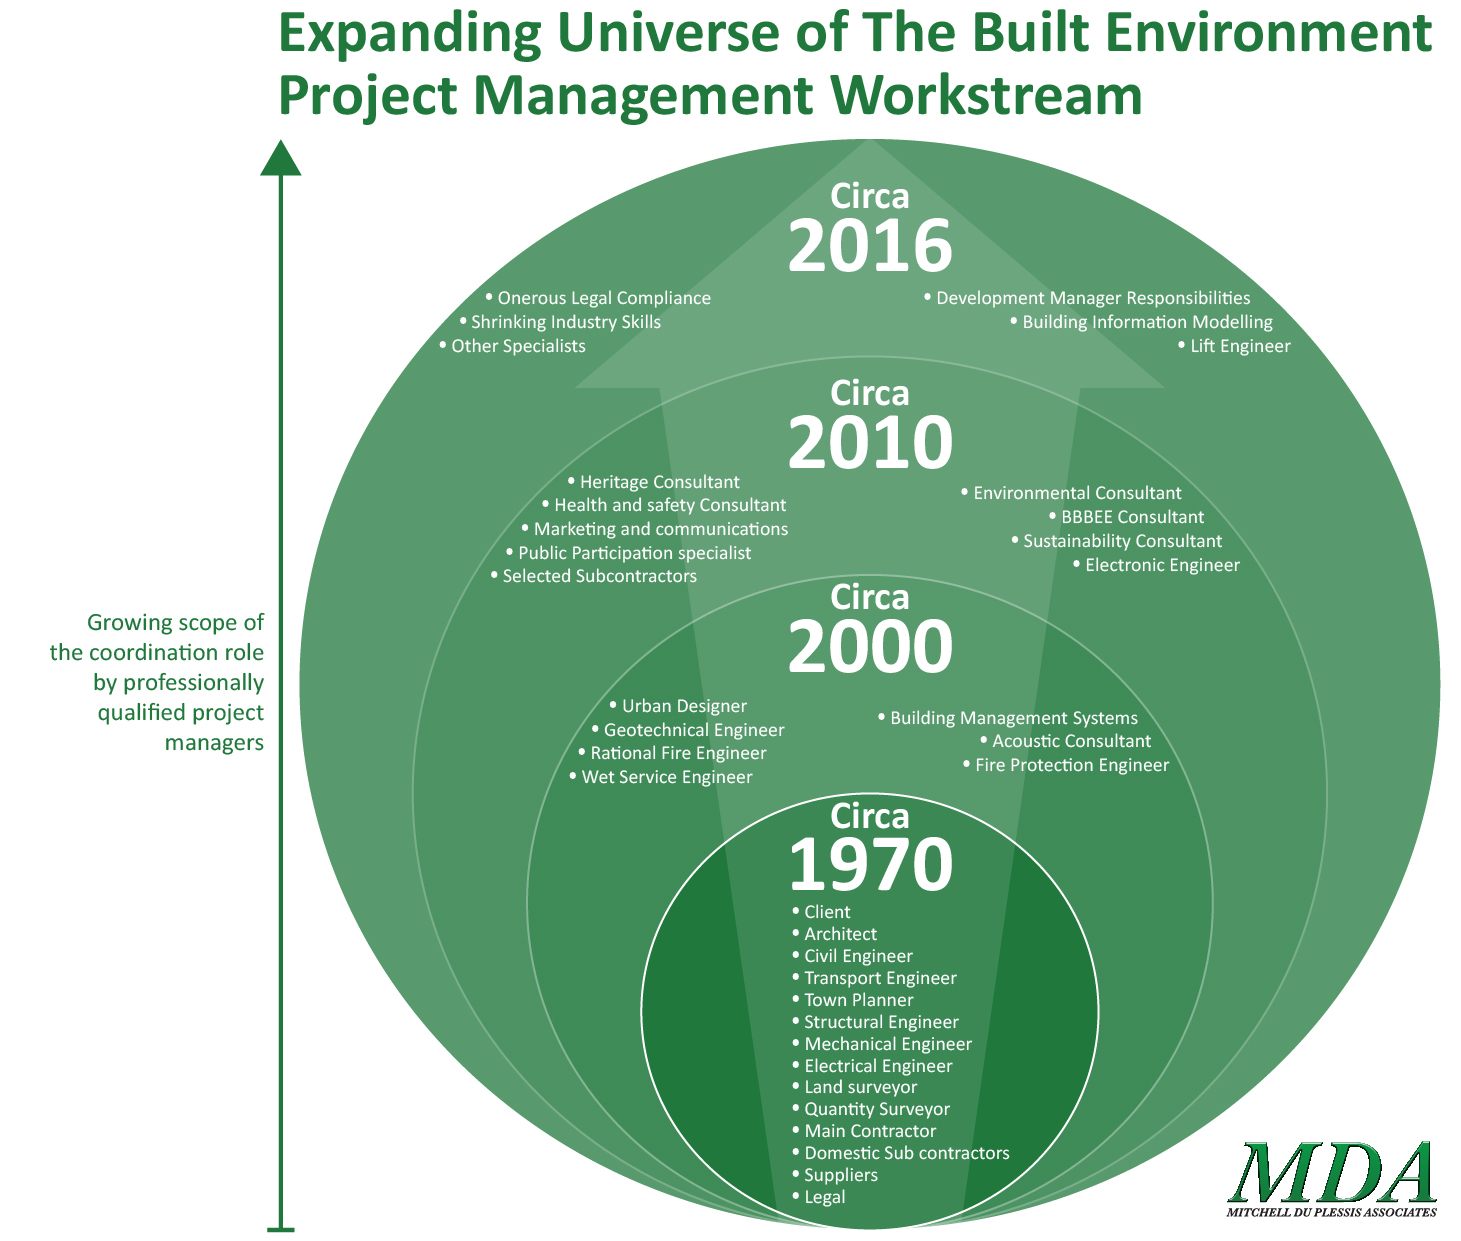 How Does Construction Impact the Environment?